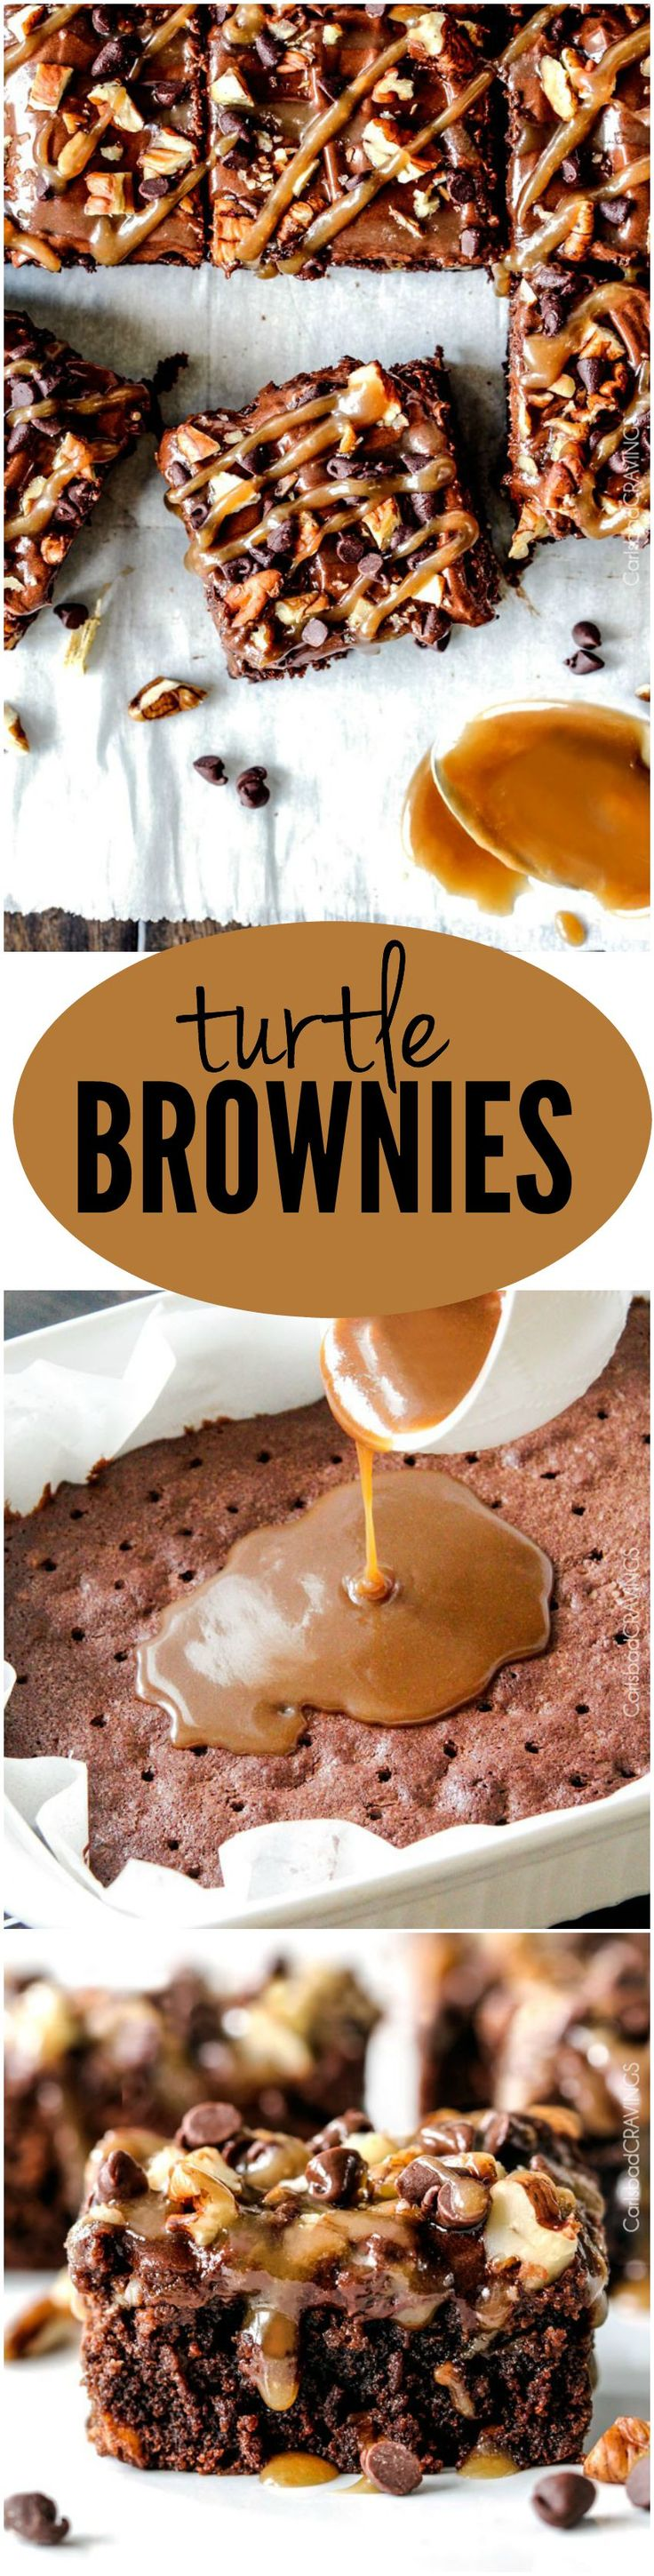 Seeping with pockets of caramel, infused with pecans and chocolate chips, smothered in the BEST chocolate frosting and topped with more caramel!